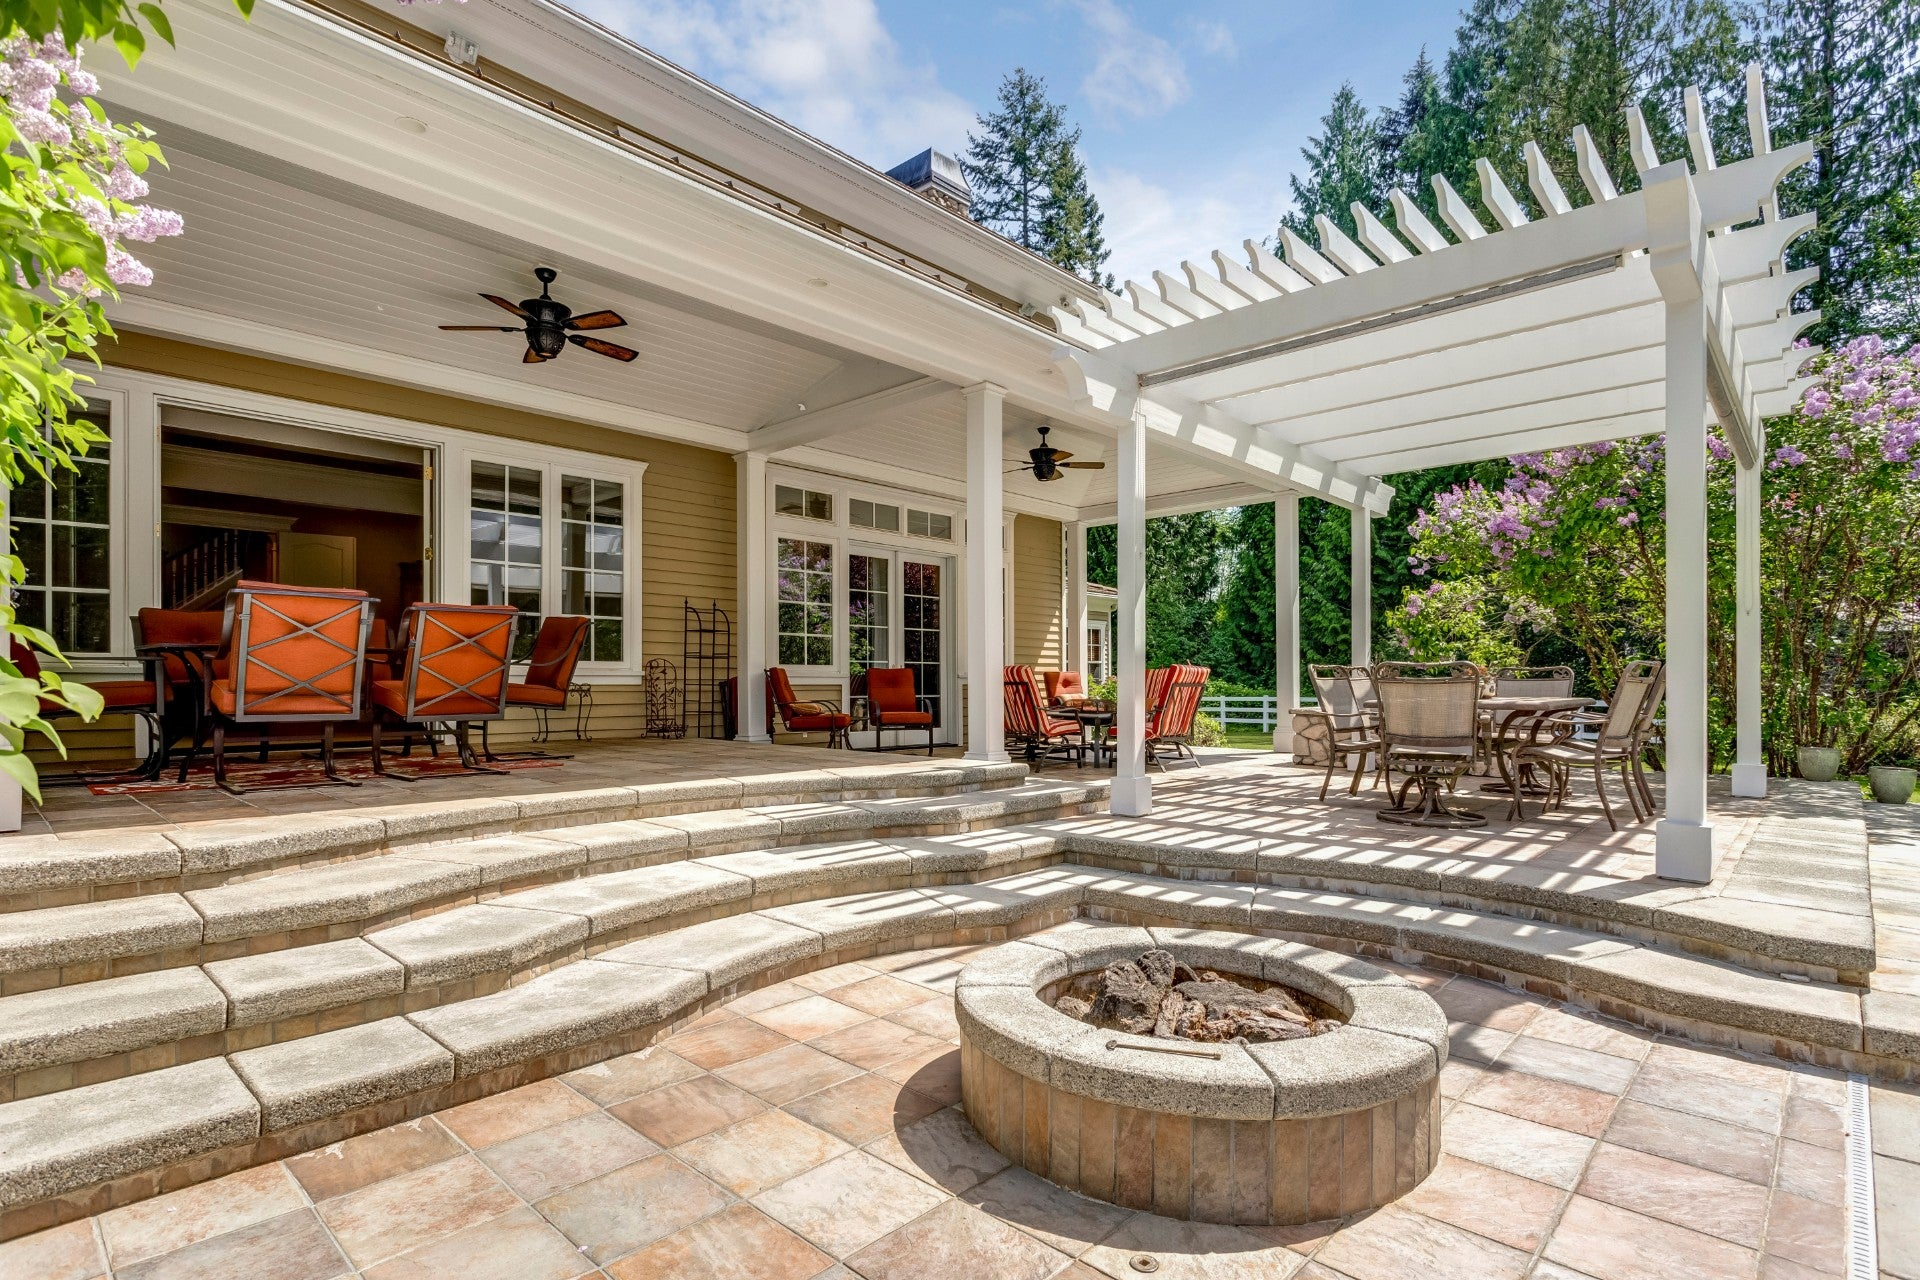 Fire Pit and Pergola in an Outdoor Living Area